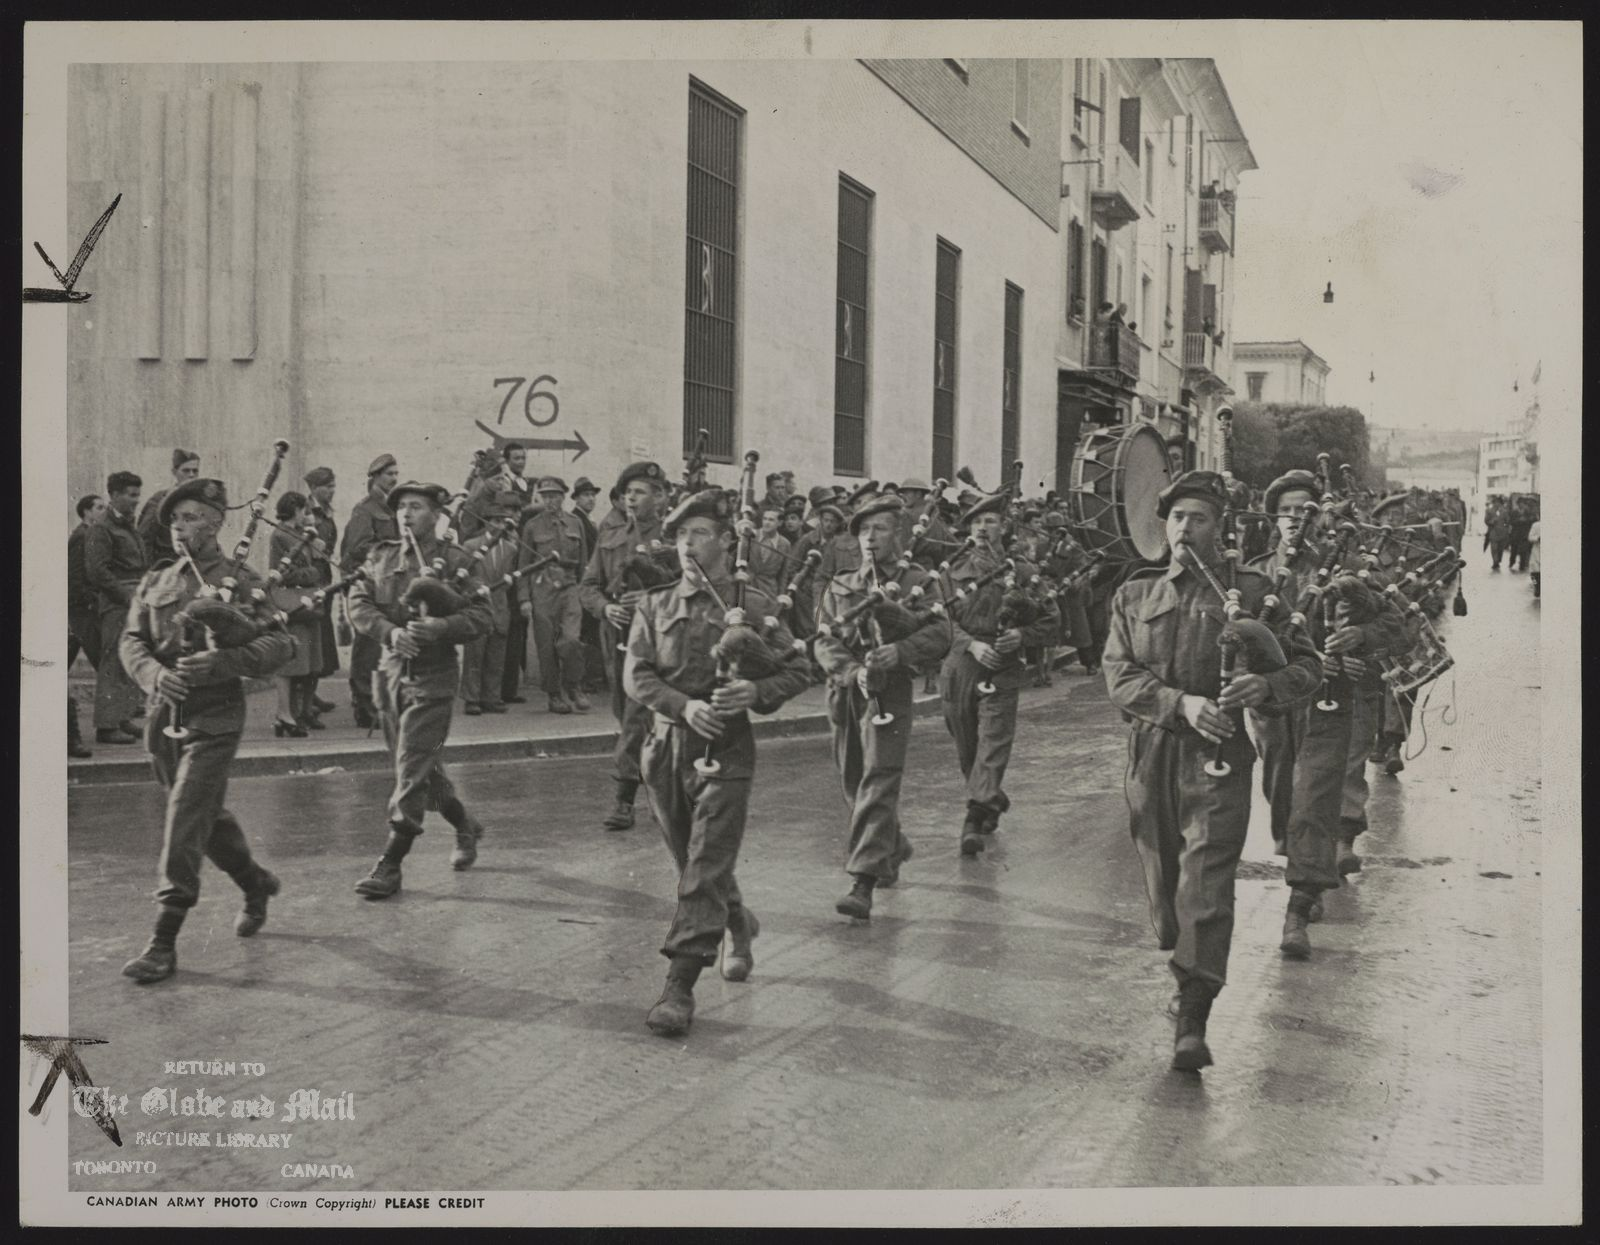 WORLD WAR II CANADA FORCES IN ITALY 48th Highlanders in Italy. Canadian Army Photo